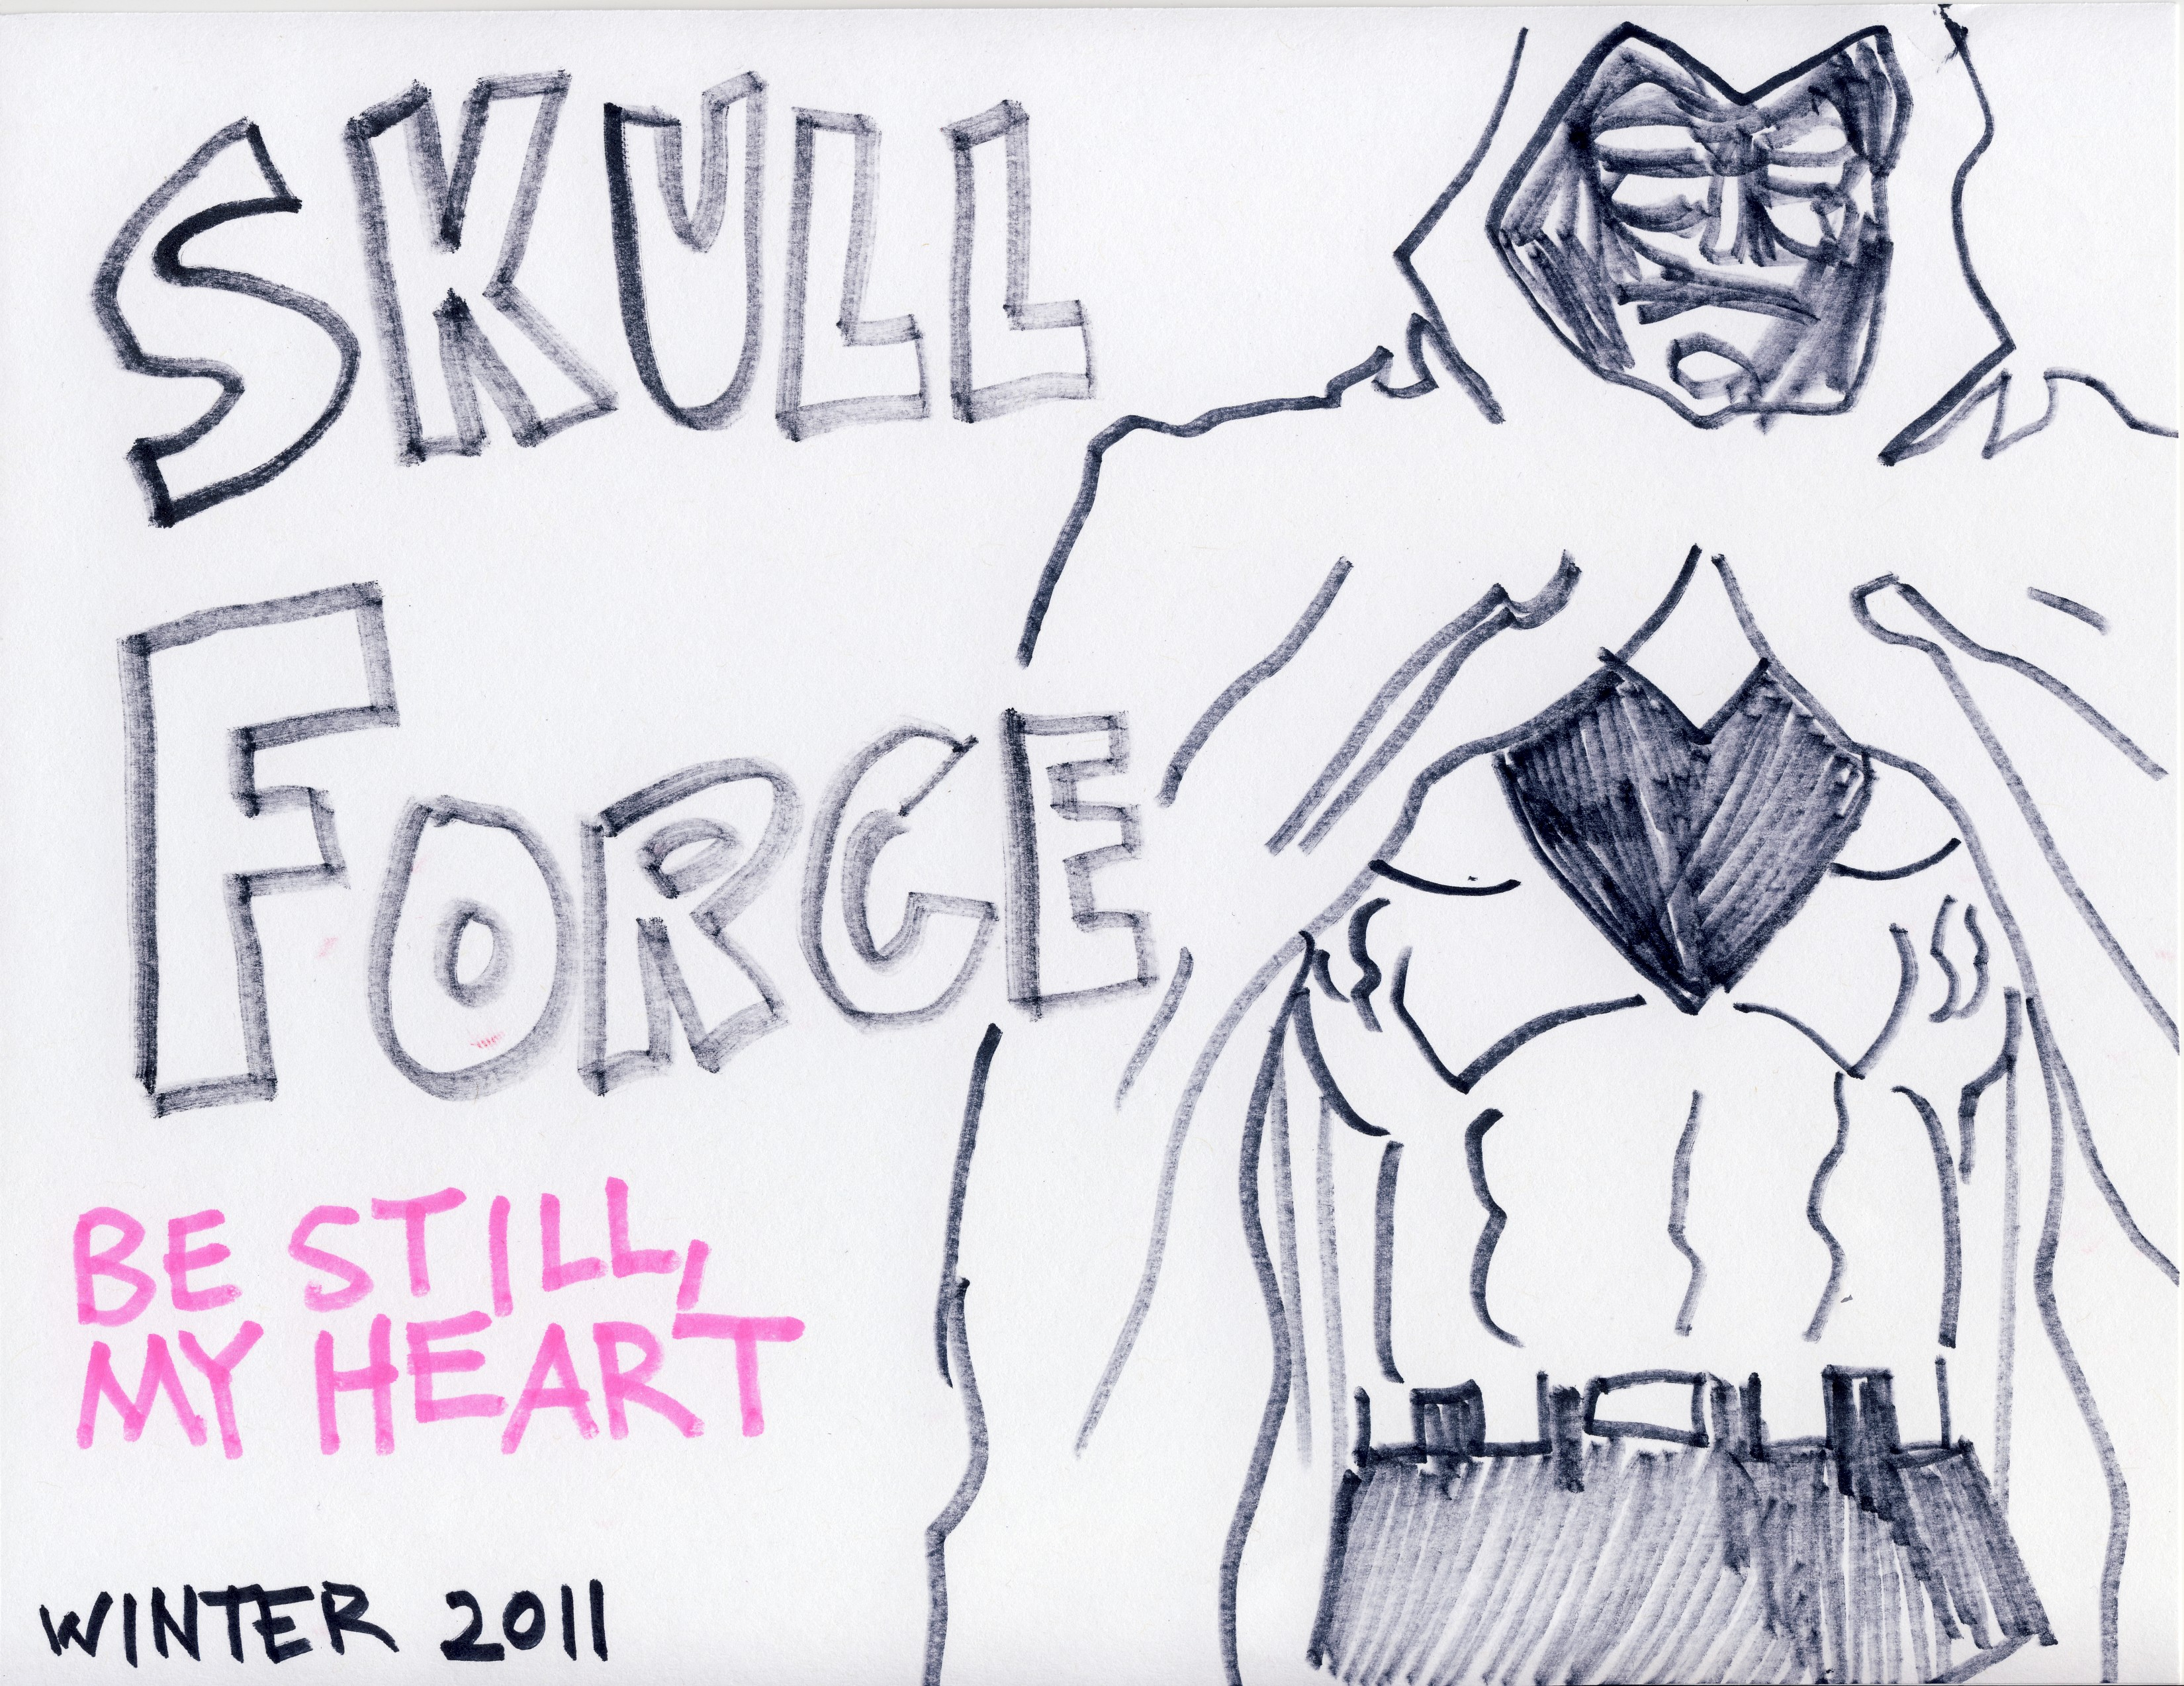 Skull Force Comics 44. Winter 2011: Be Still, My Heart